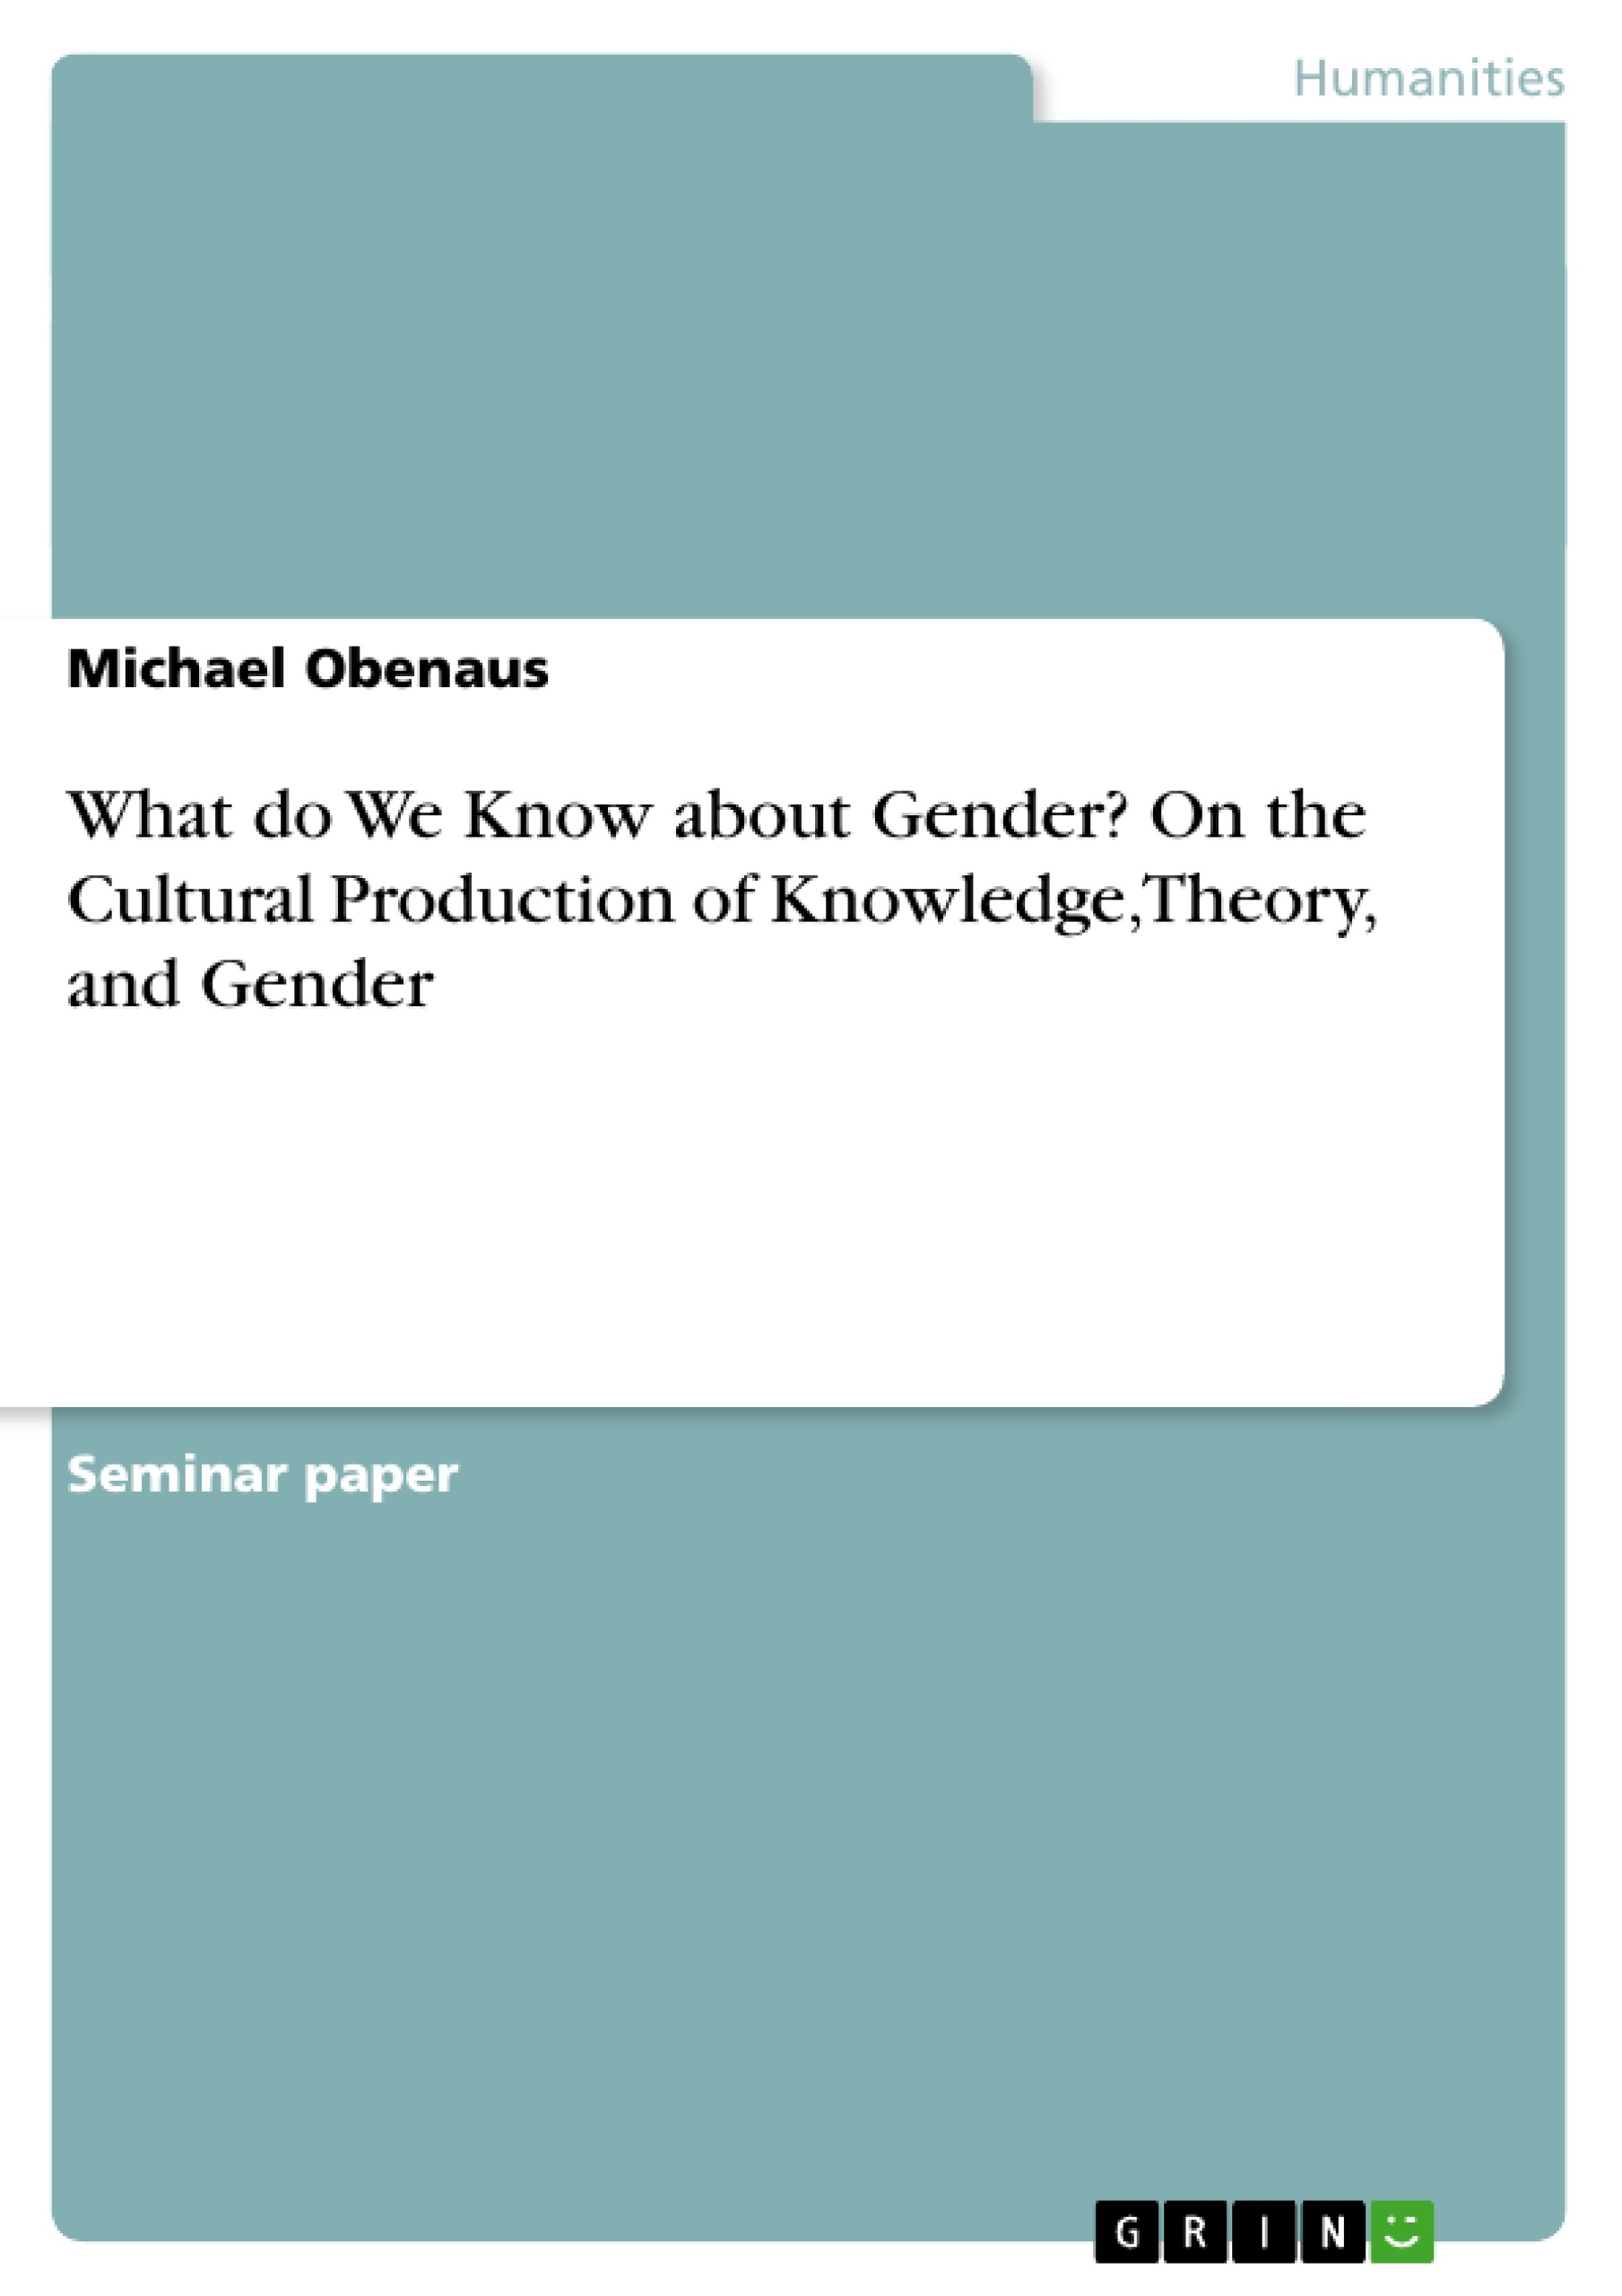 Title: What do We Know about Gender? On the Cultural Production of Knowledge, Theory, and Gender